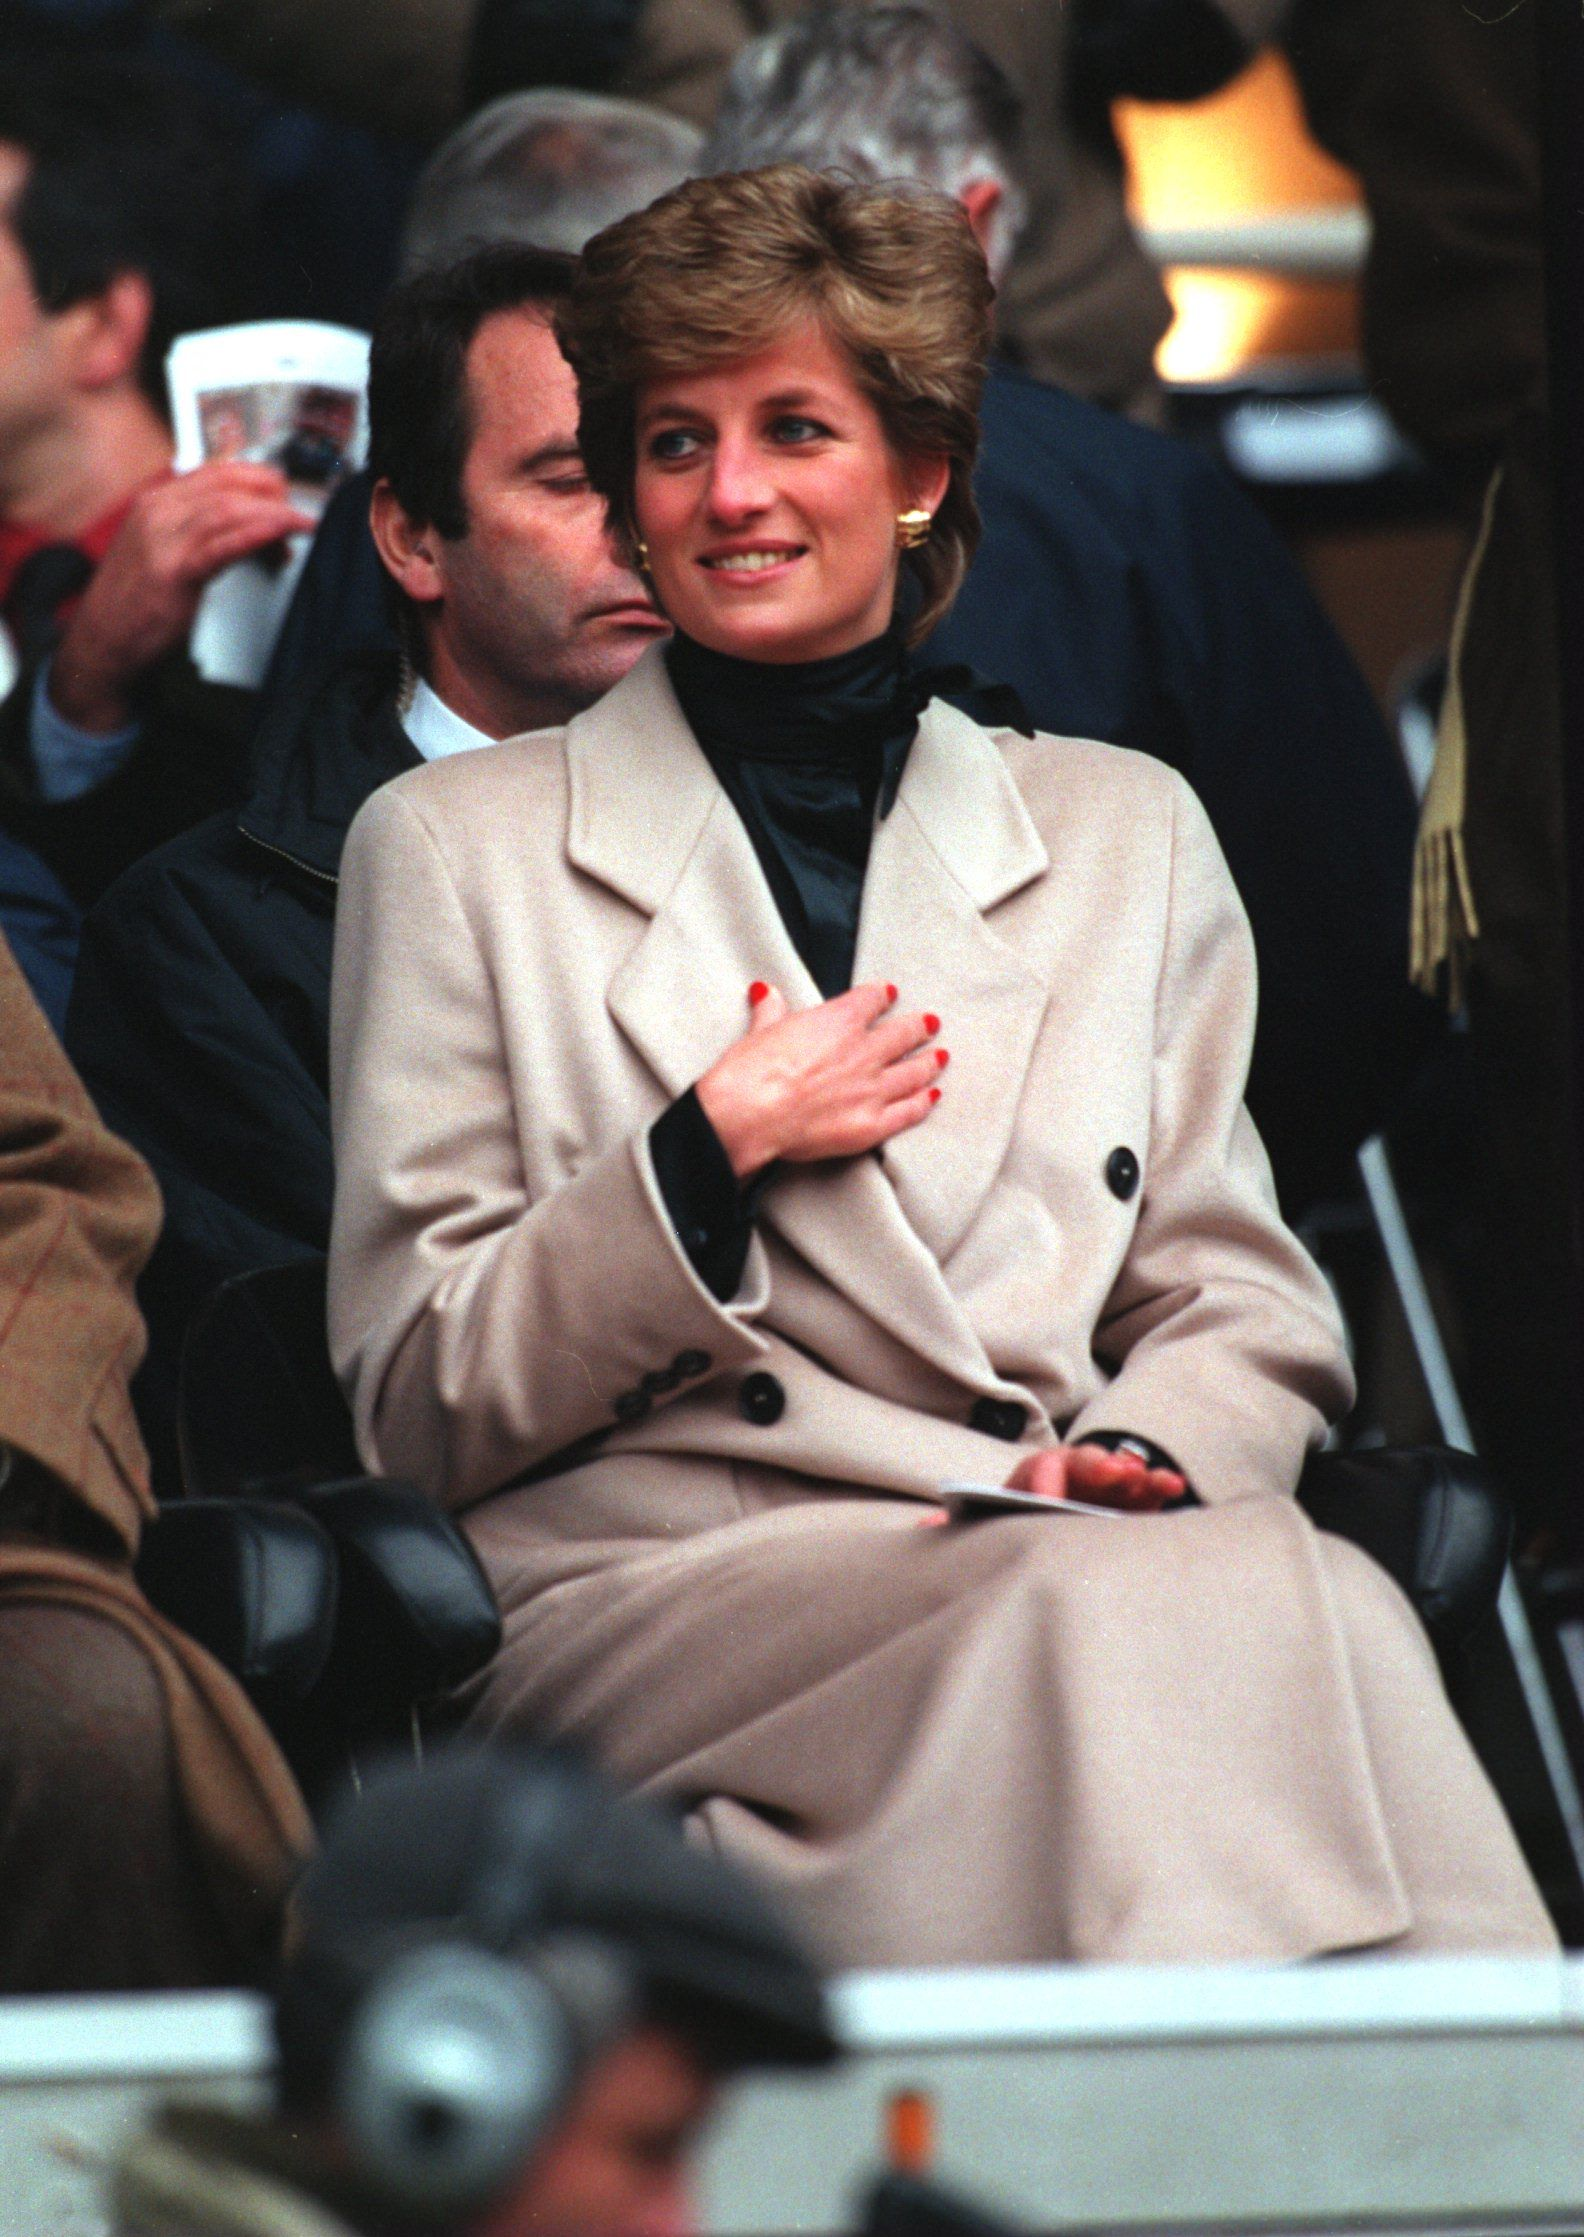 Princess Diana watching the Welsh Rugby Union team during the first five nations match of the season against France on January 21,1995, at Parc Des Princes in Paris   Photo:Pascal Rondeau/ALLSPORT/Getty Images